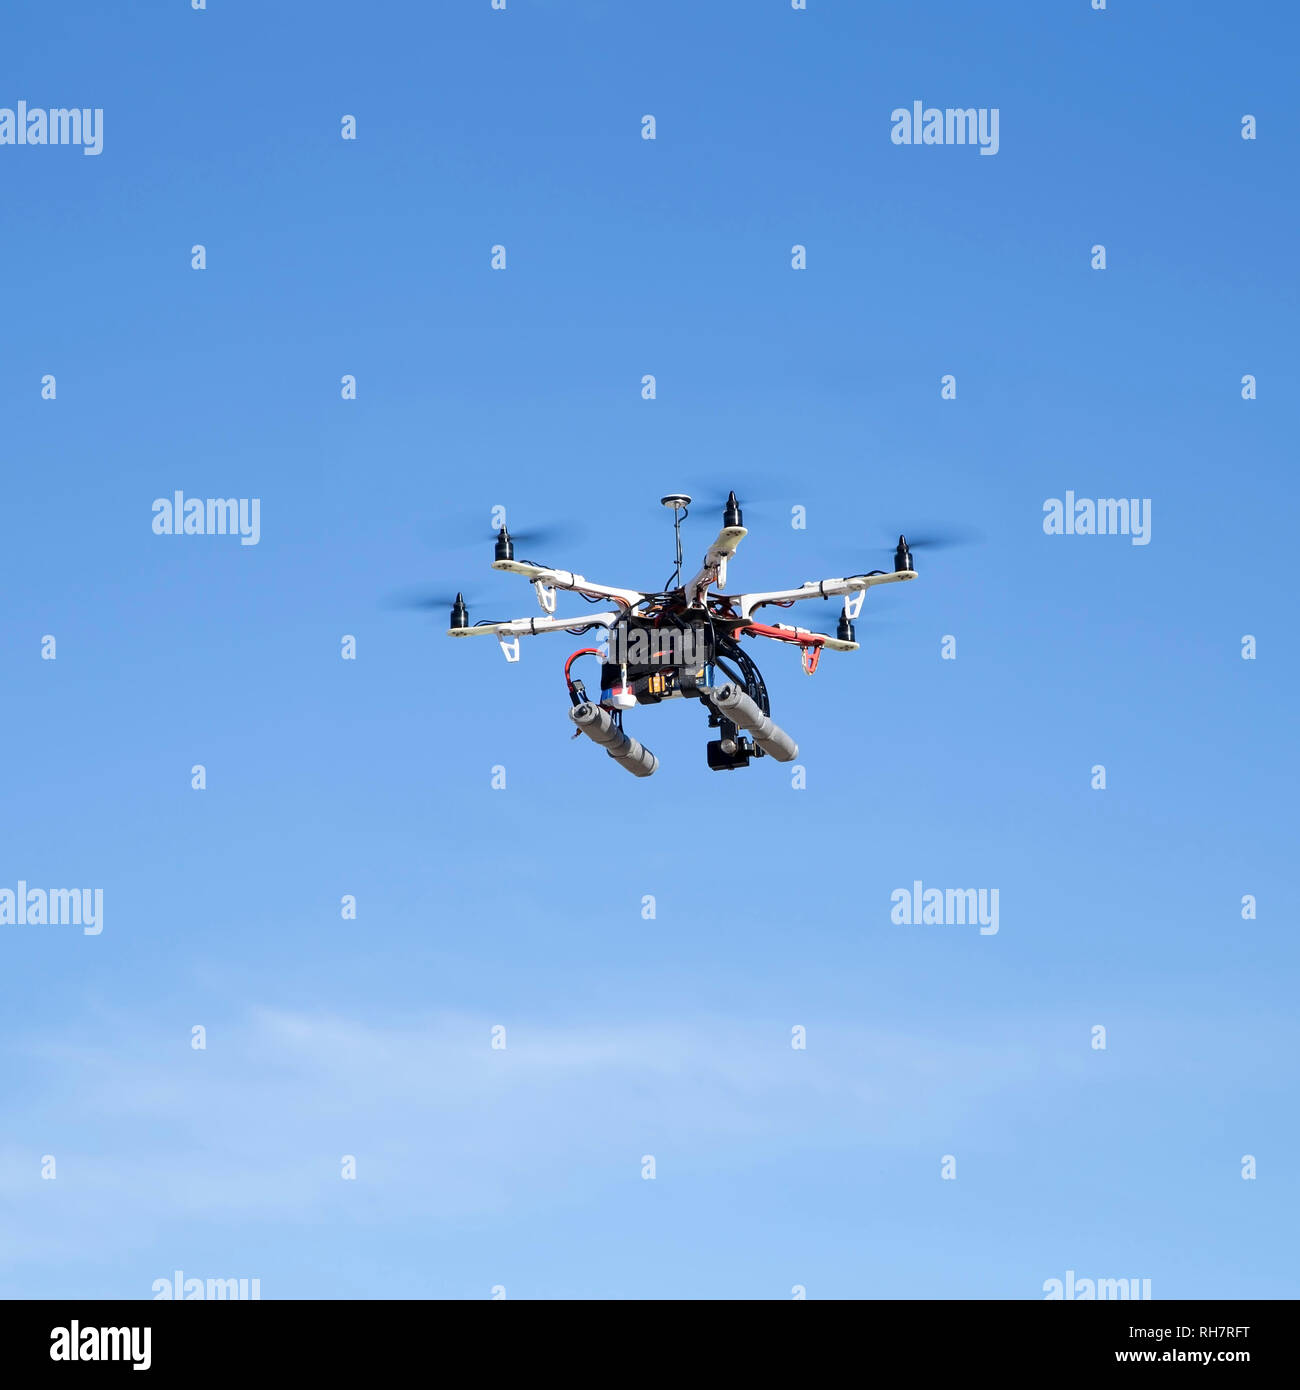 Octacopter drone flying over blue sky - Stock Image